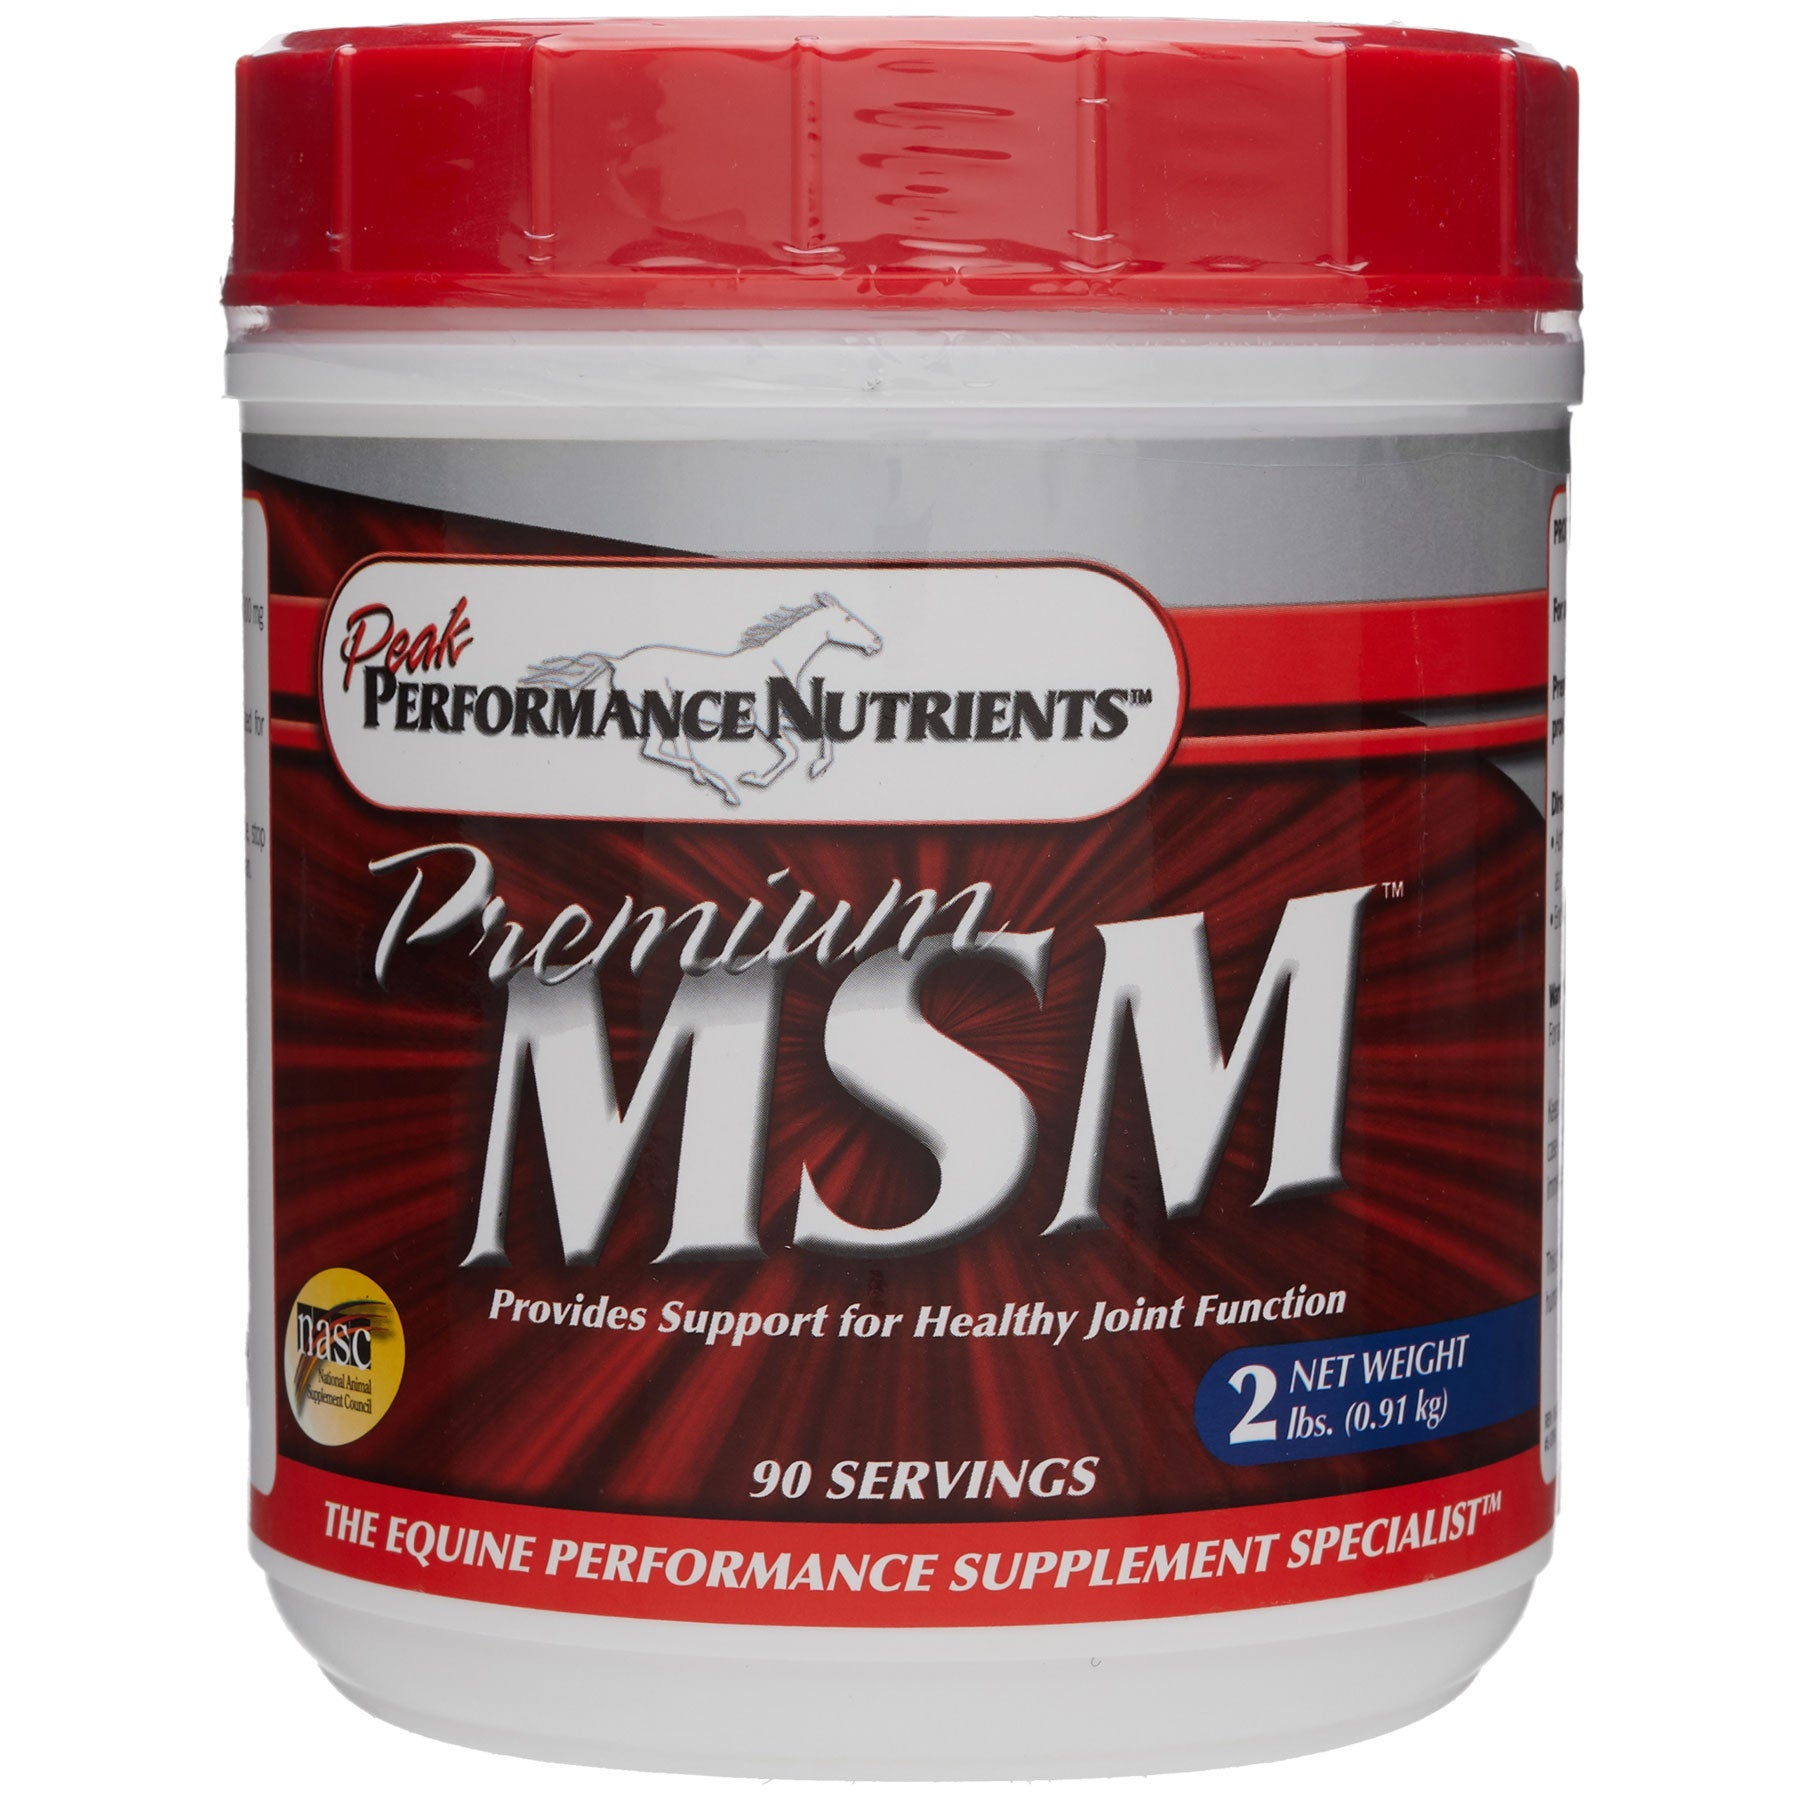 Peak Performance Nutrients Premium MSM Joint Supplement - Riding